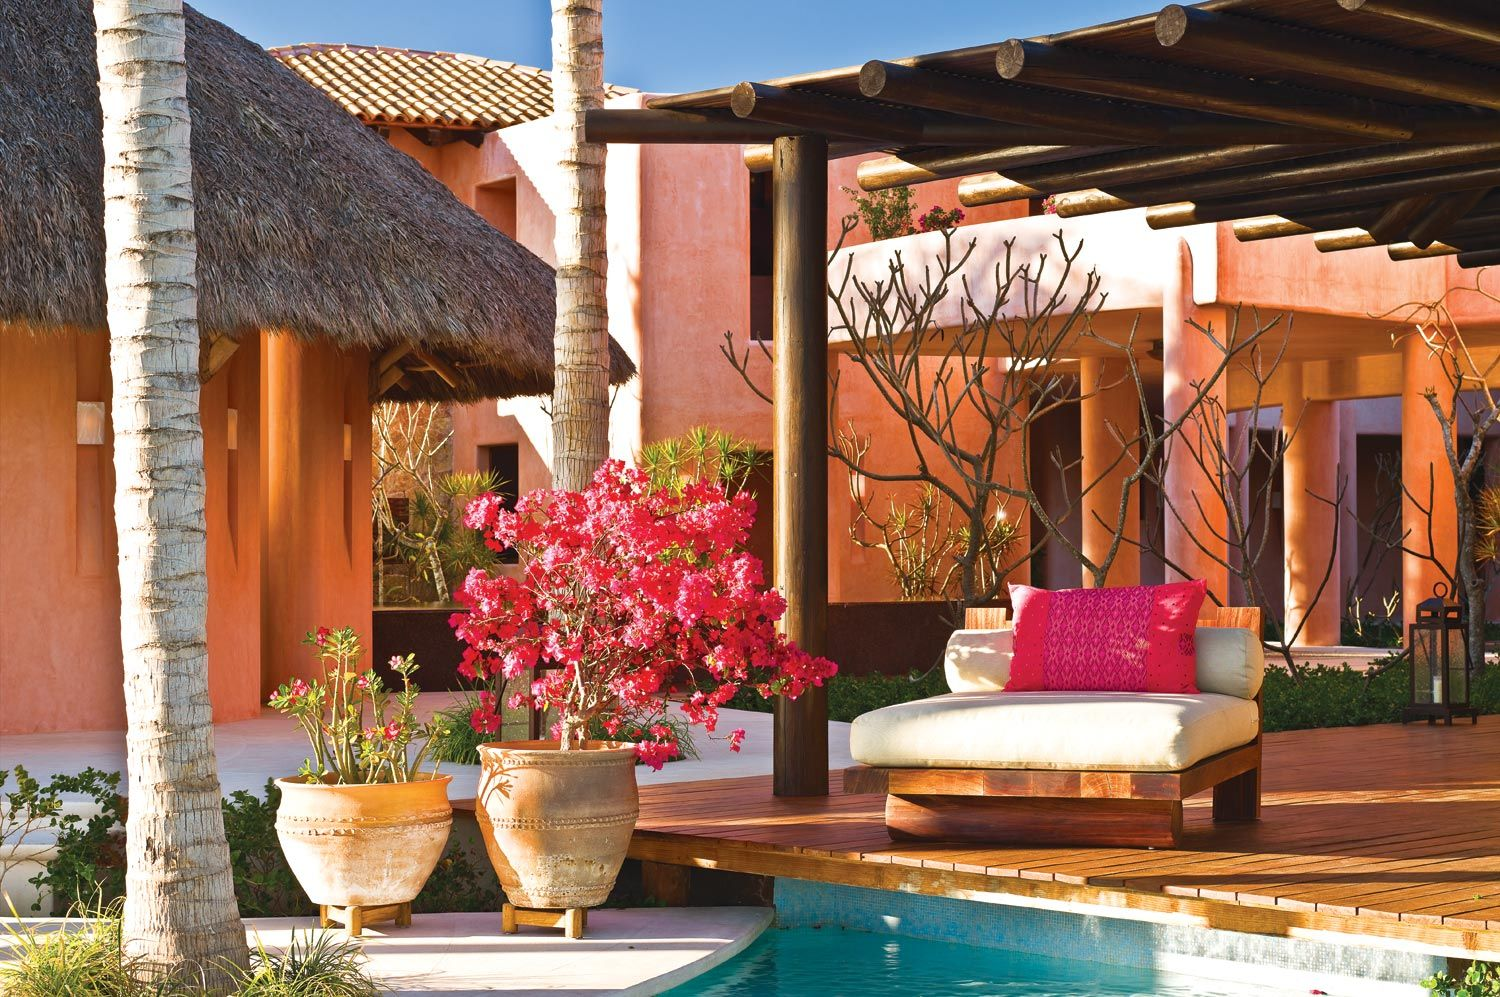 igniting a love affair with the beauty of mexico that will last